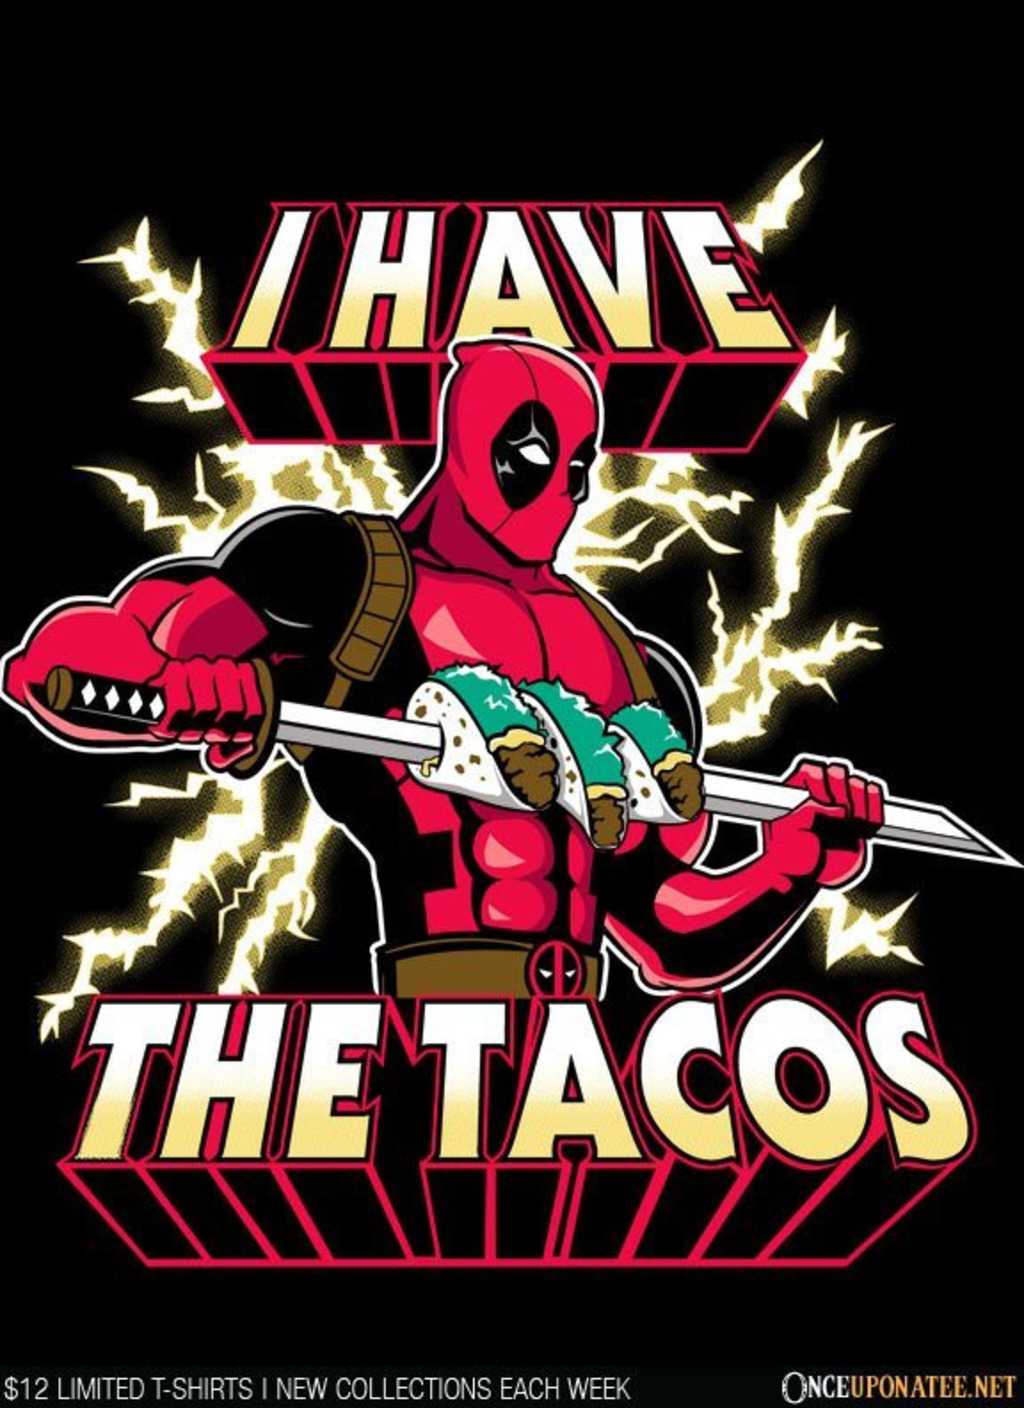 Once Upon a Tee: I Have the Tacos